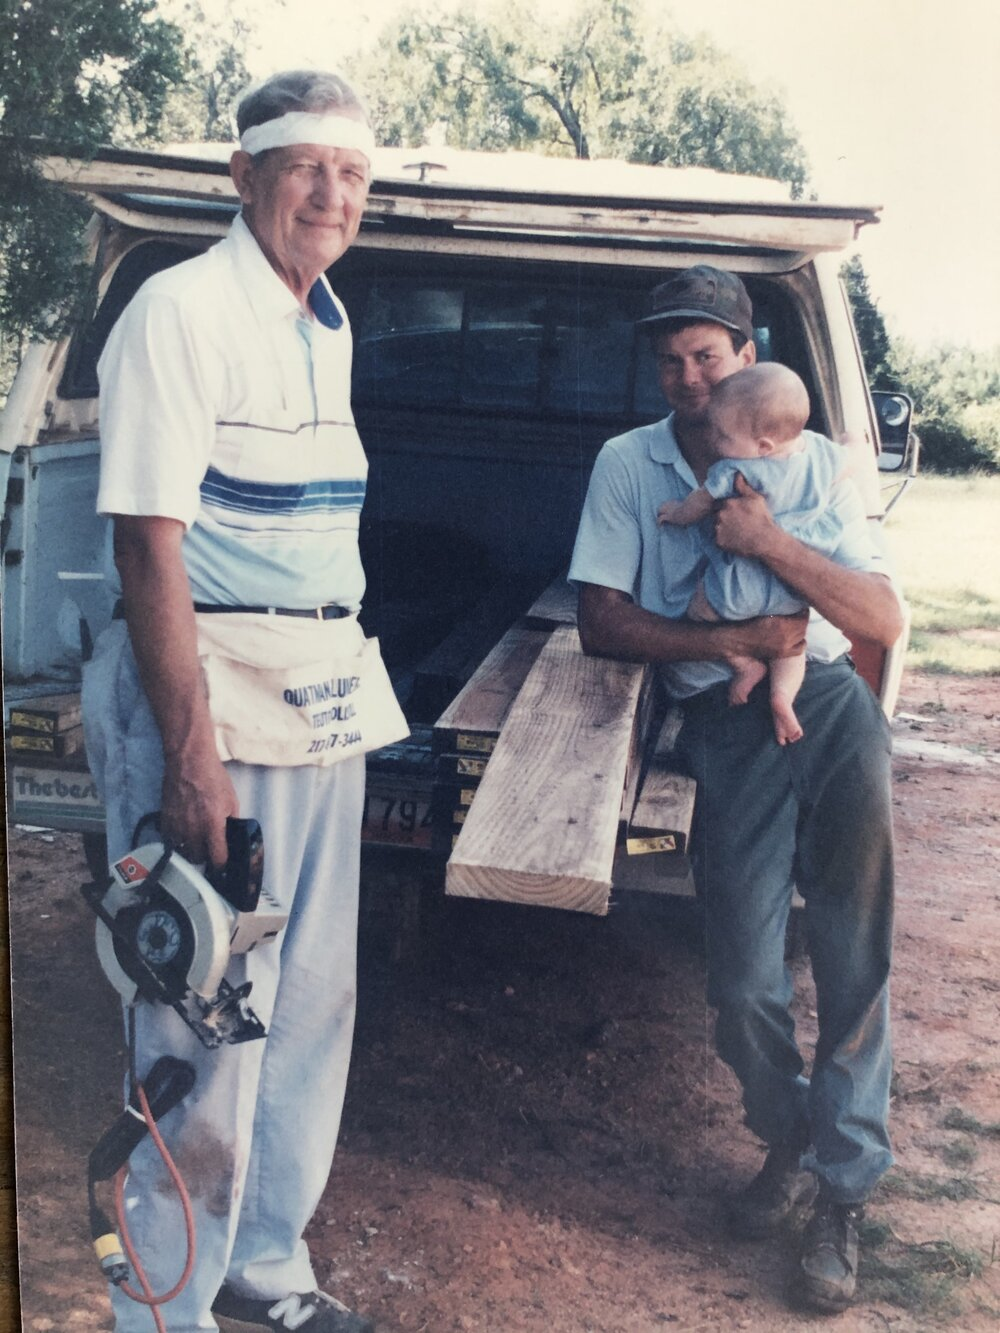 My late grandfather, John M. Schultz, my dad, and 6 month old me on the family farm in Sparta, Georgia. September 1991.